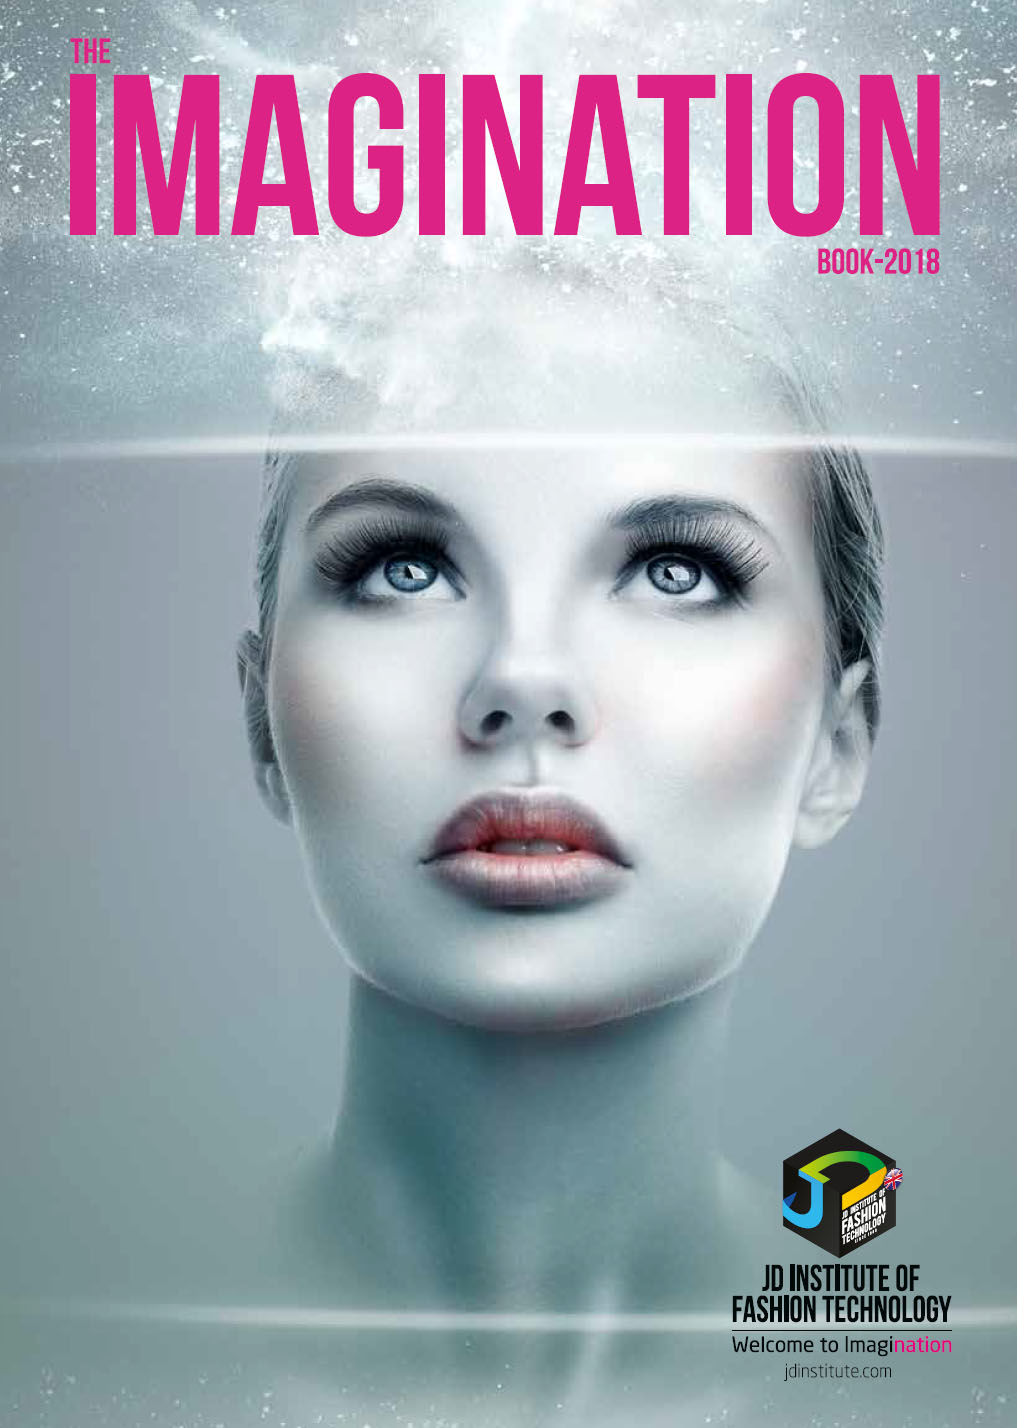 best college for fashion designing - Imagination Book 2018 Cover - Imagination Books